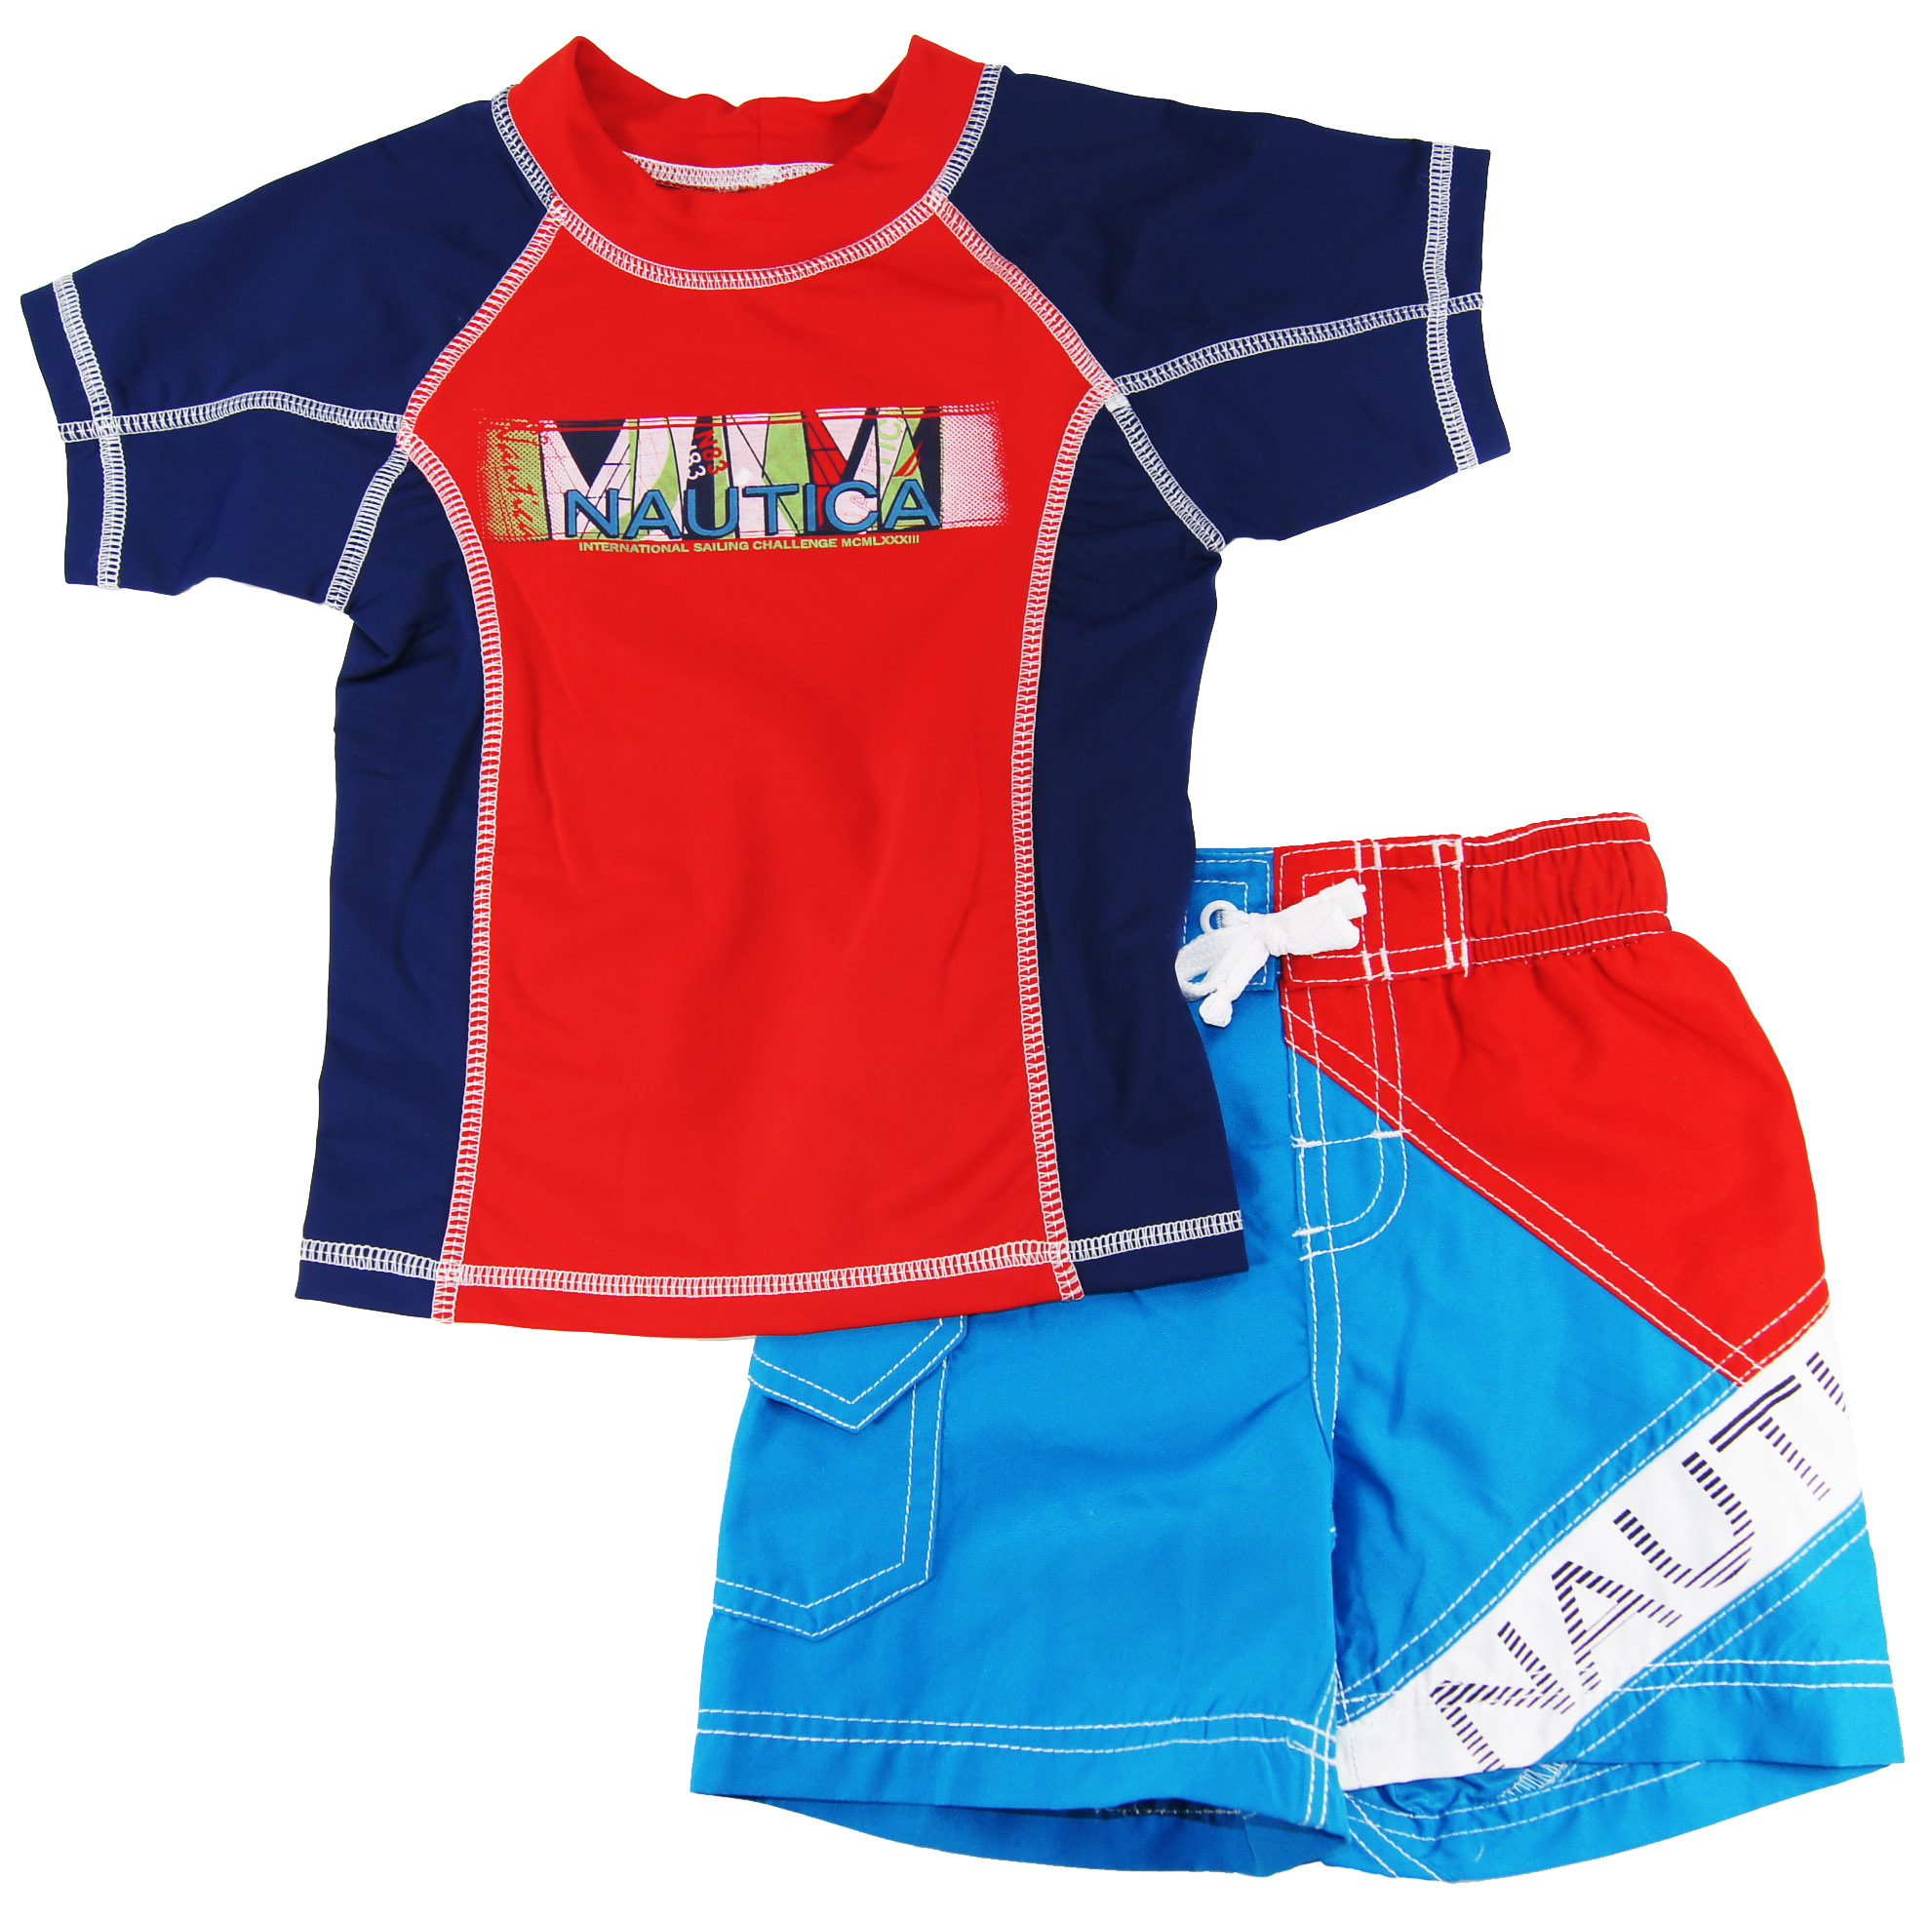 Nautica Toddler Boys Blue/Red Print Rash Guard Swim Top/Shorts 2 Pc Set 2T 3T 4T at Sears.com